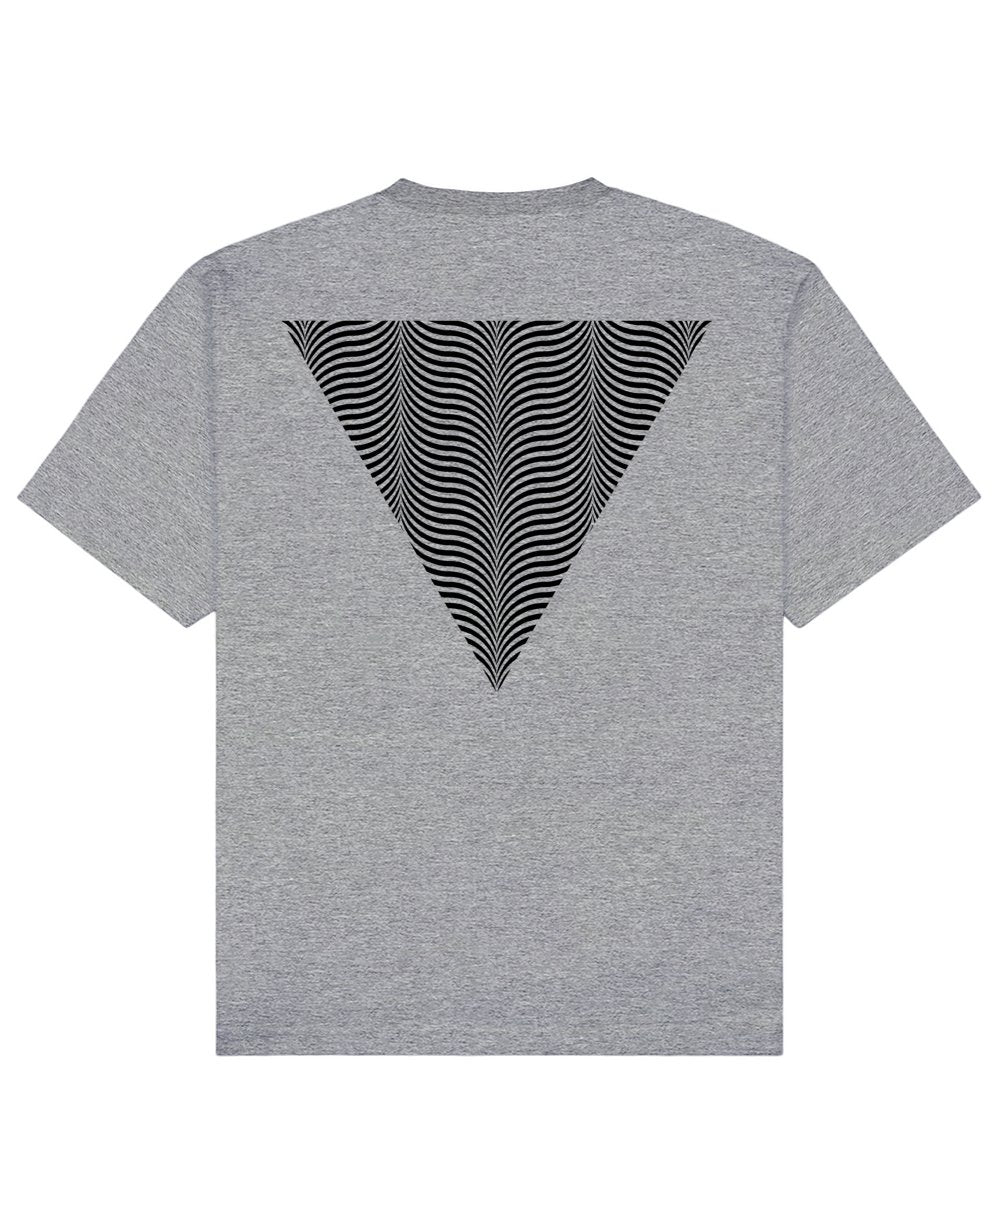 Illusion Back Print T-Shirt in Gray - T-Shirts - Franz Mesmer - BRANMA